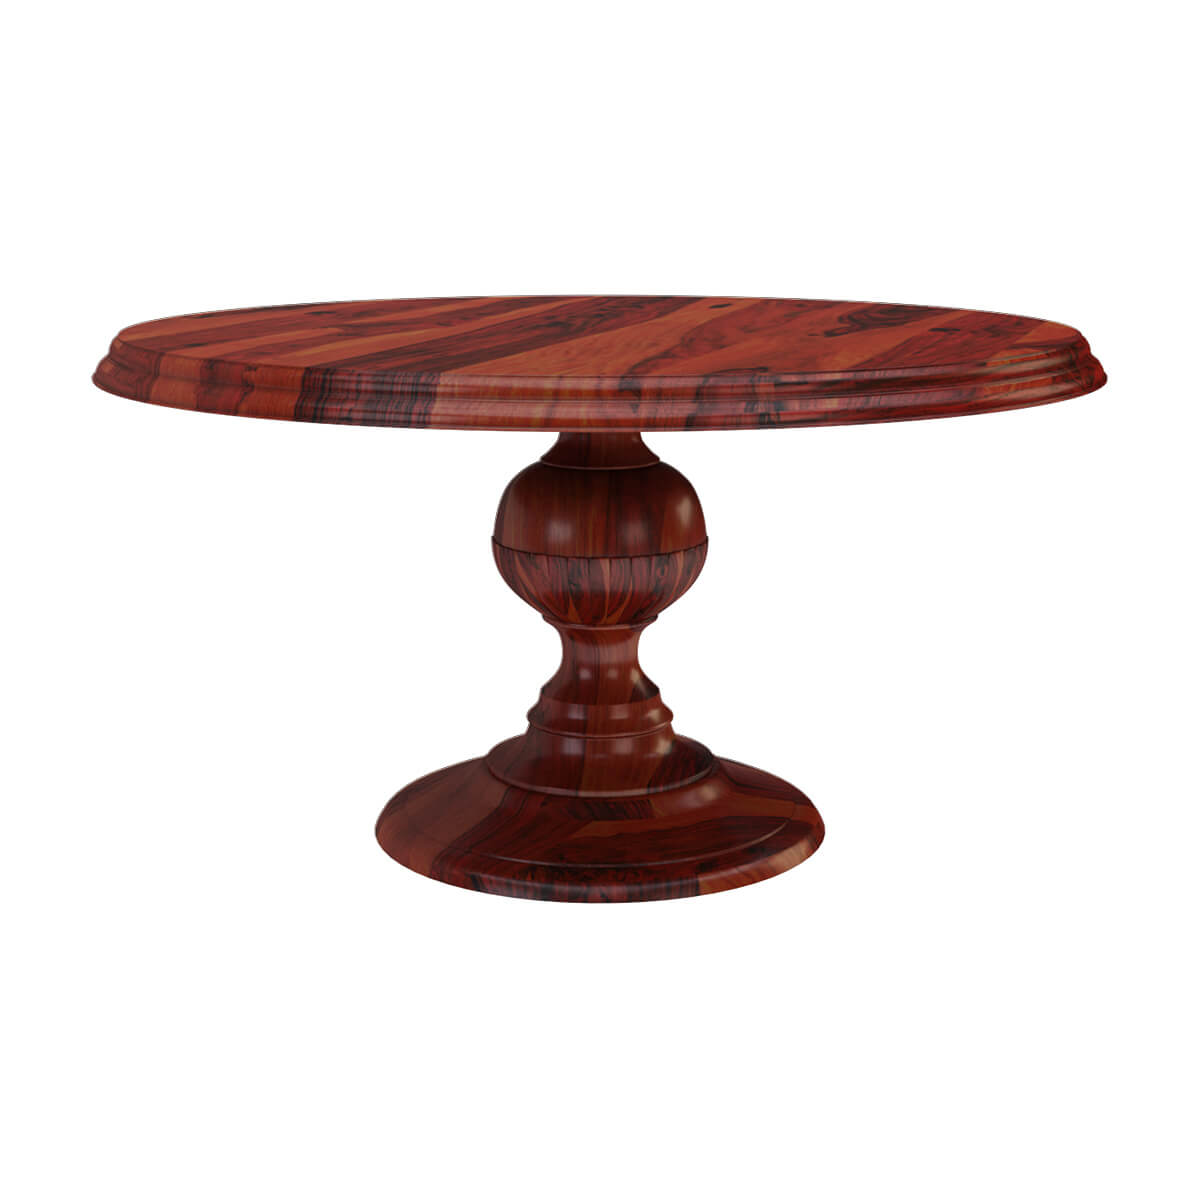 Solid Wood Rustic 60 Round Dining Table With Pedestal Base